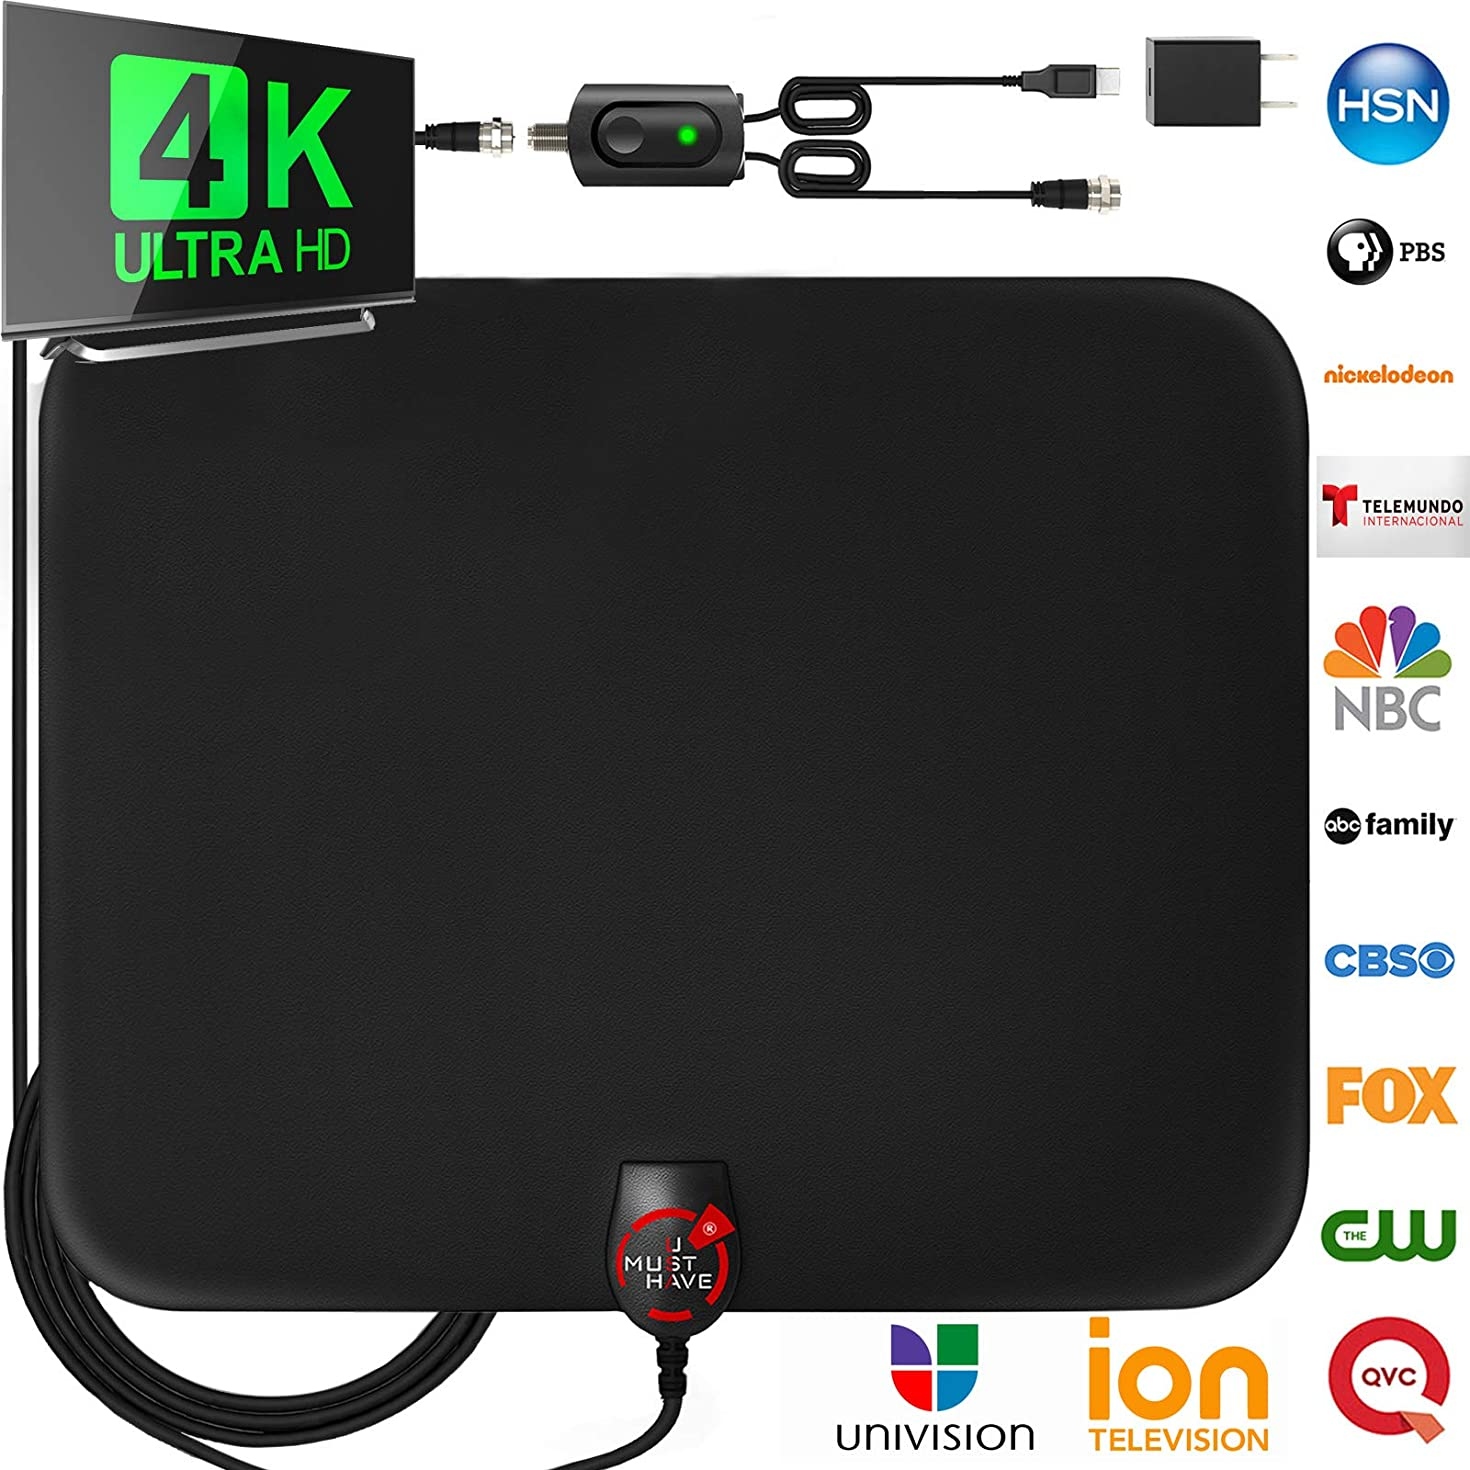 [Upgraded 2019] Amplified HD Digital TV Antenna Long 140 Miles Range – Support 4K 1080p and All Older TV's Indoor Powerful HDTV Amplifier Signal Booster - 18ft Coax Cable/USB Power Adapter